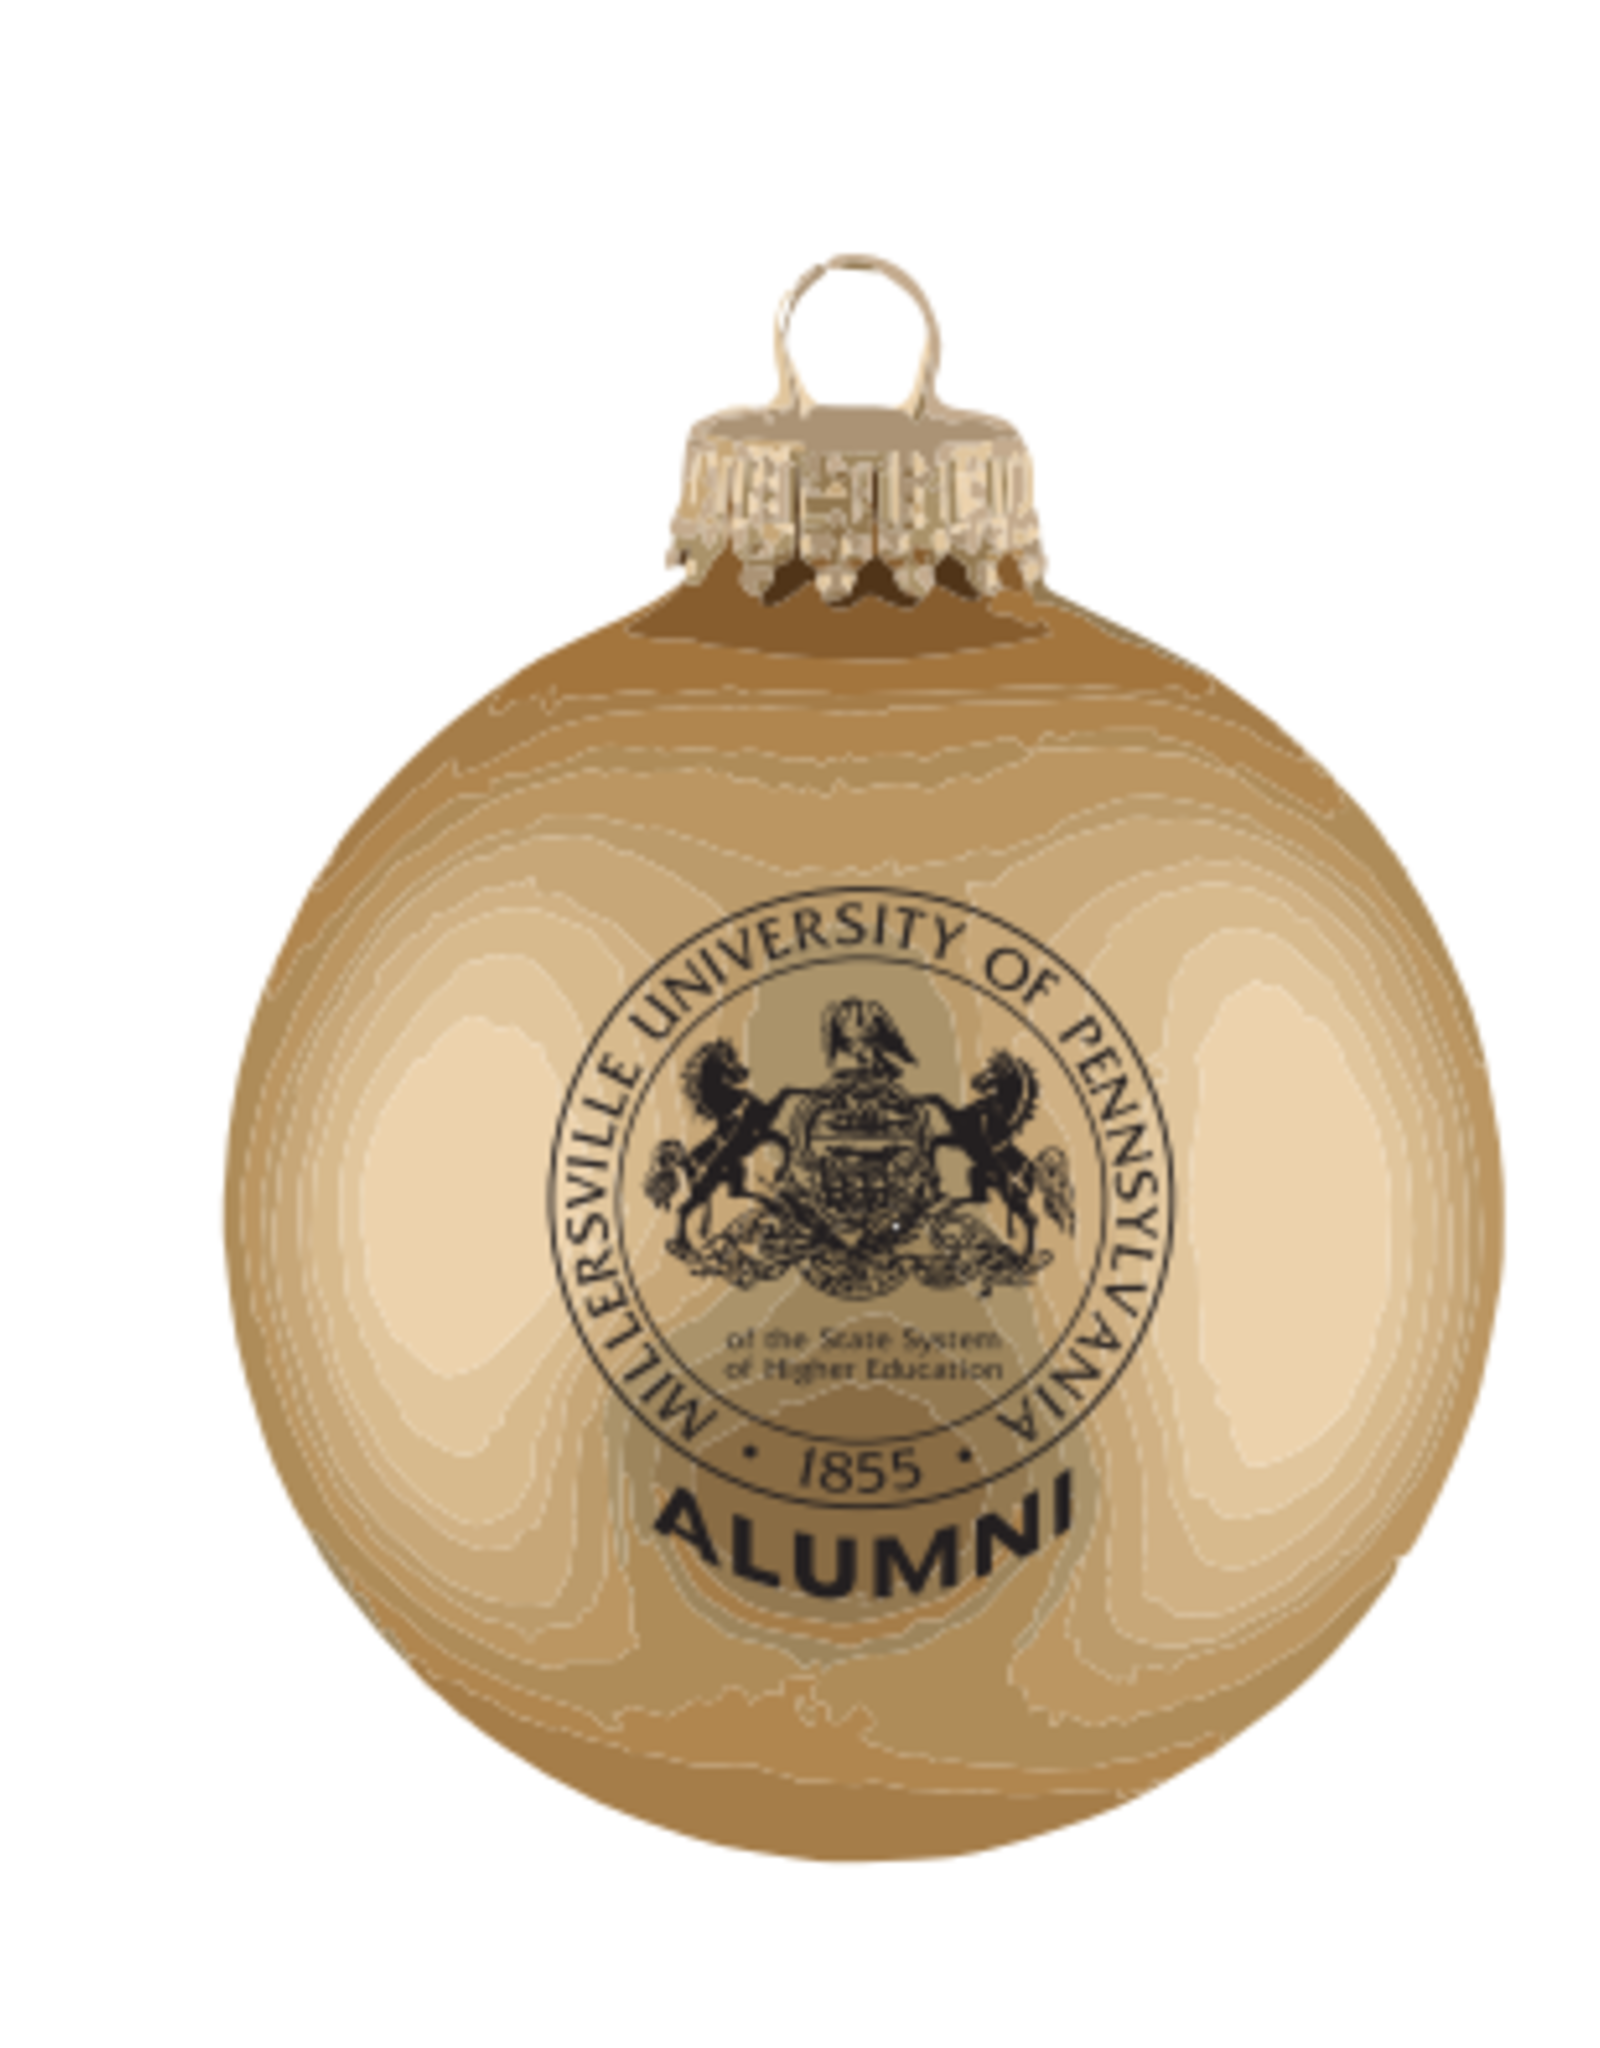 Mu Seal Alumni Ornament